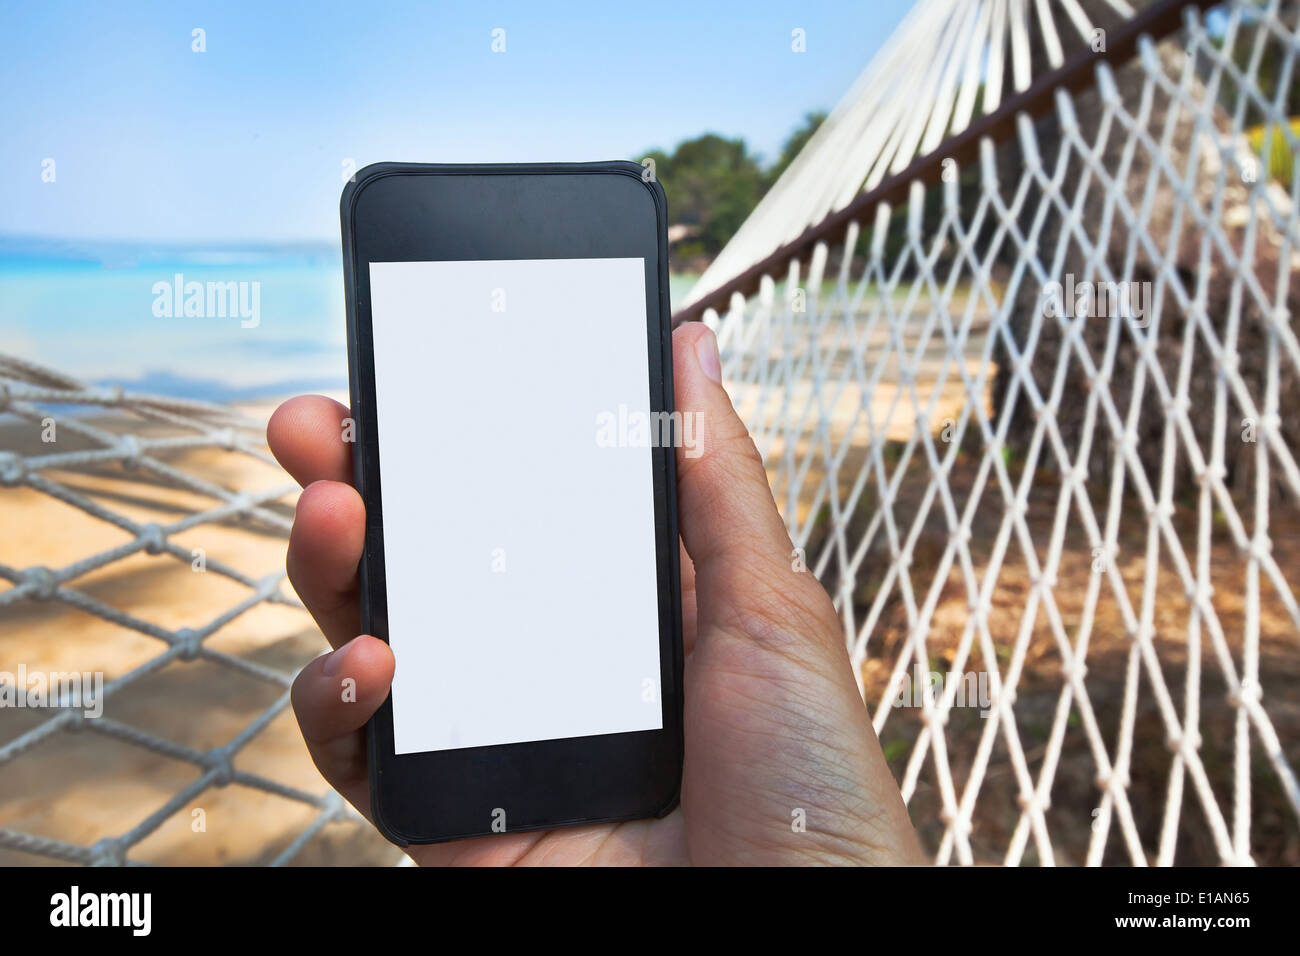 internet connection on the beach - Stock Image